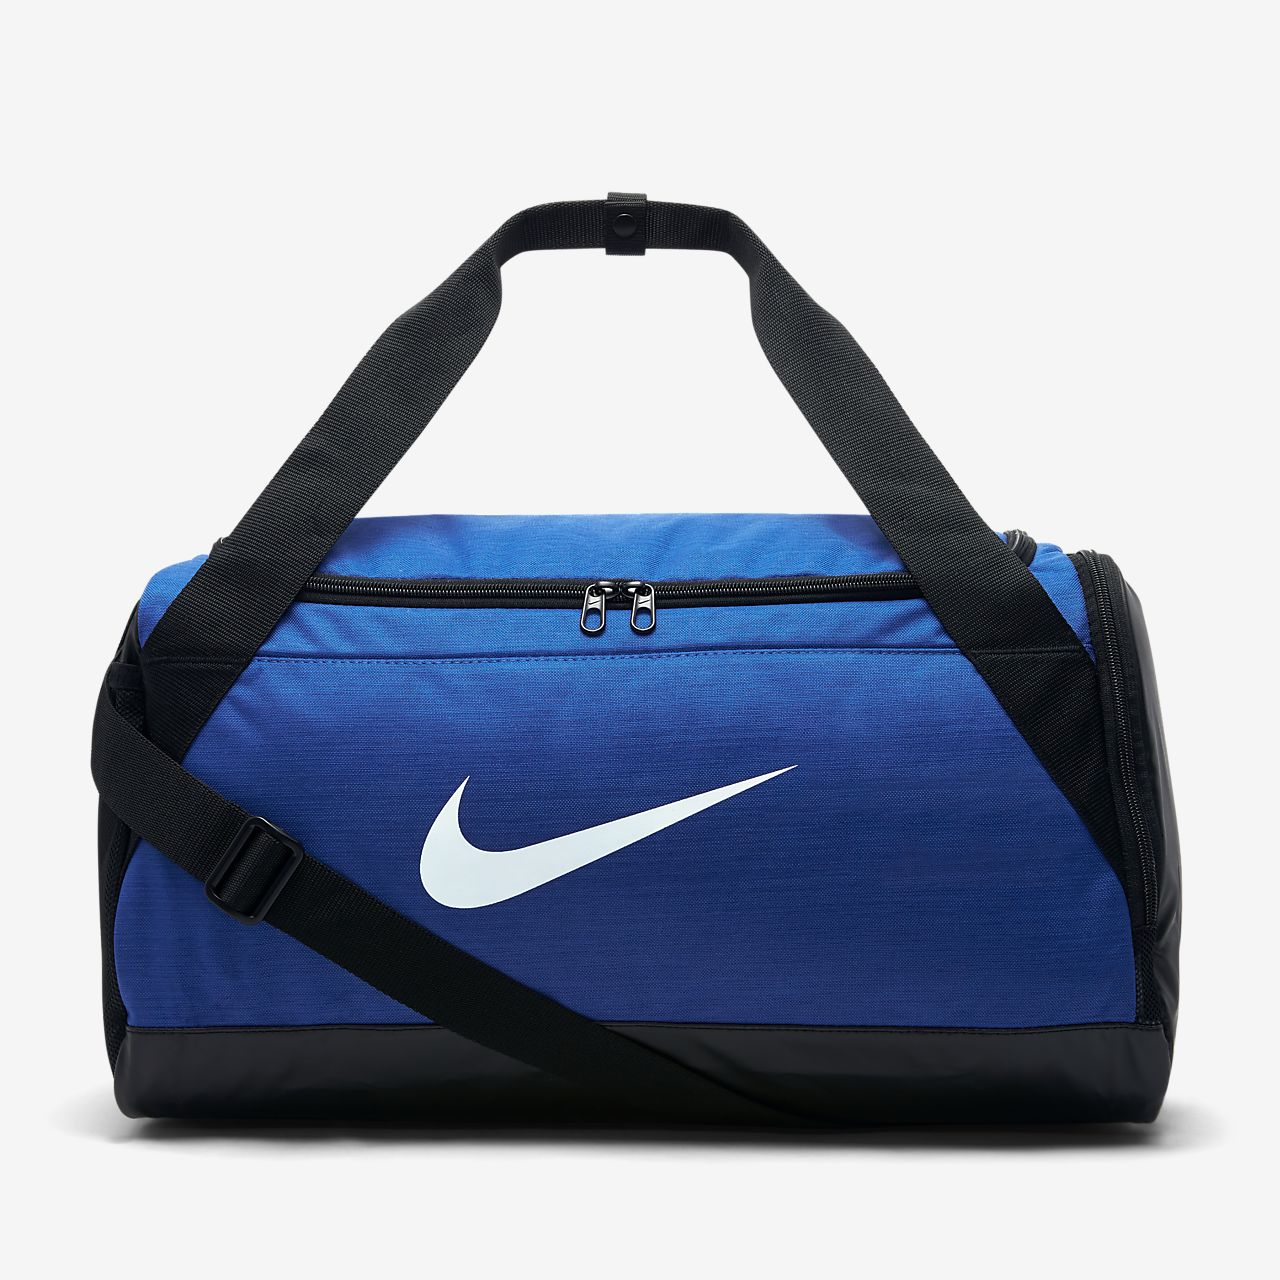 db22a5cb47 Nike Brasilia (Small) Training Duffel Bag. Nike.com AU